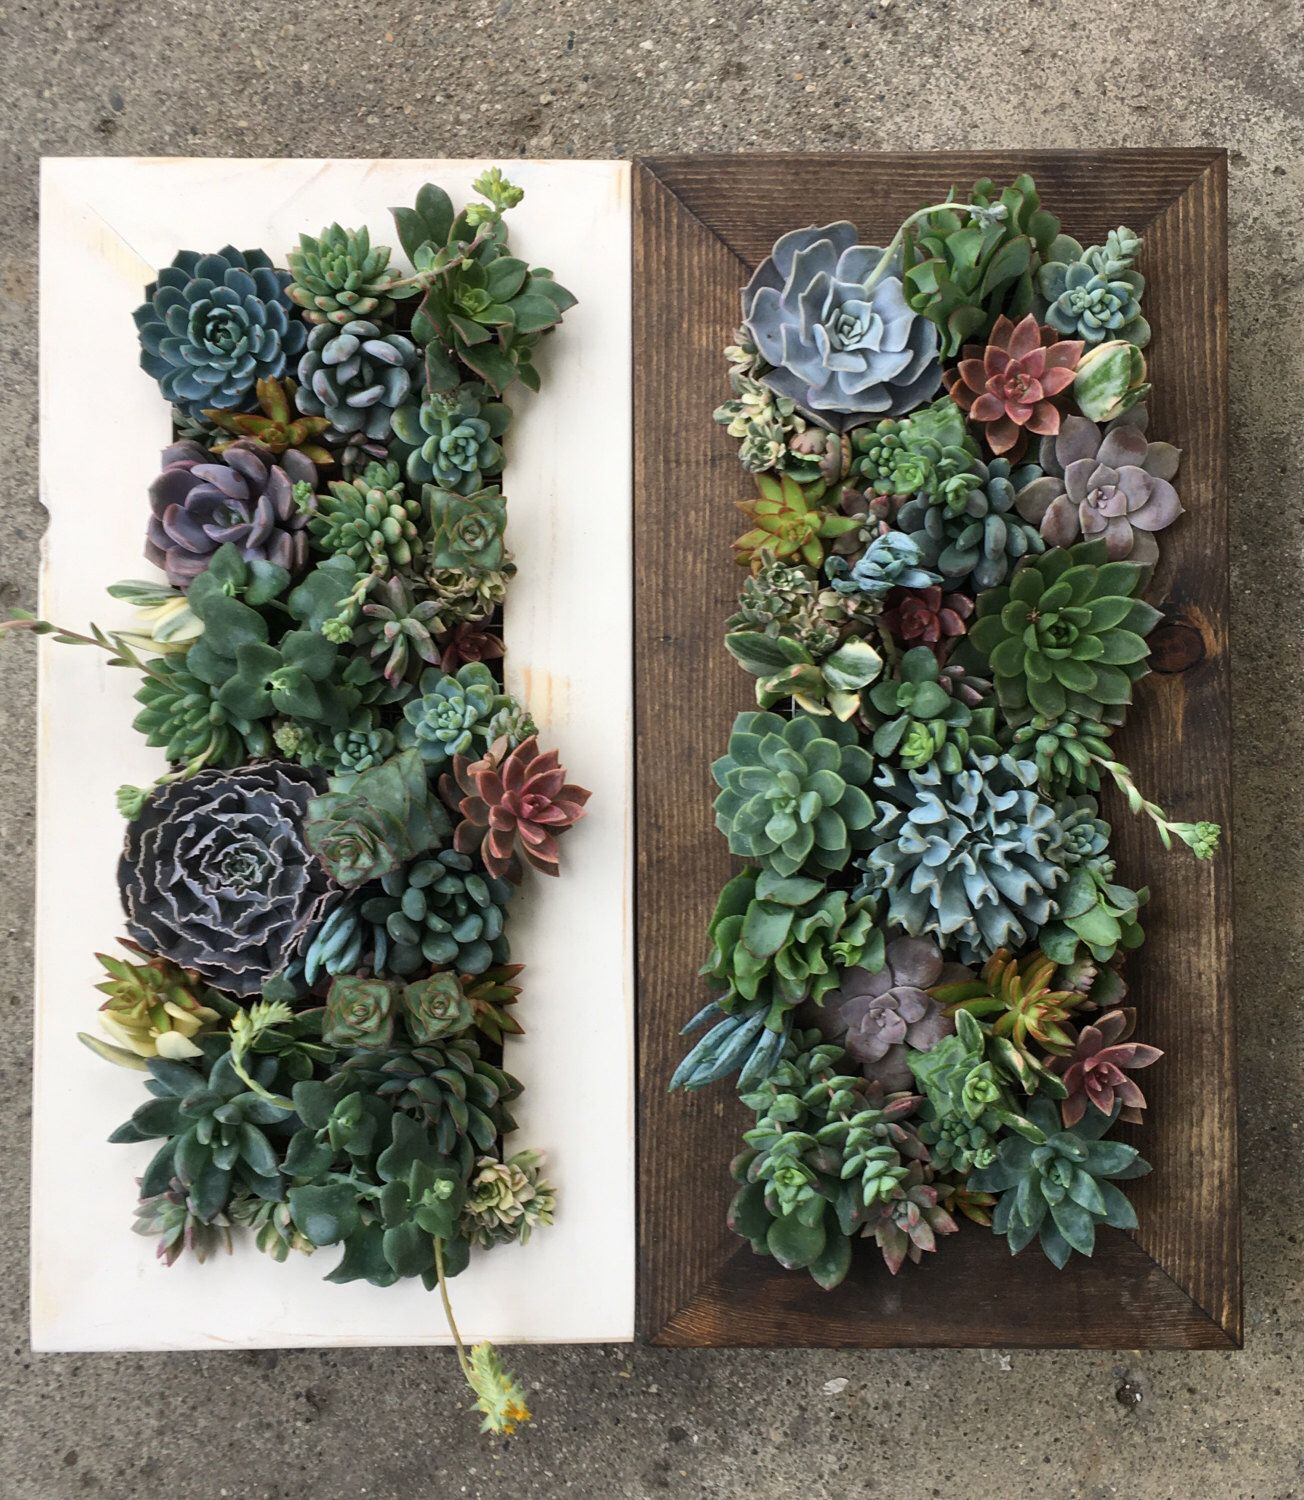 20X10 Living Wall Succulent Planter Vertical Hanging Garden Art Rustic